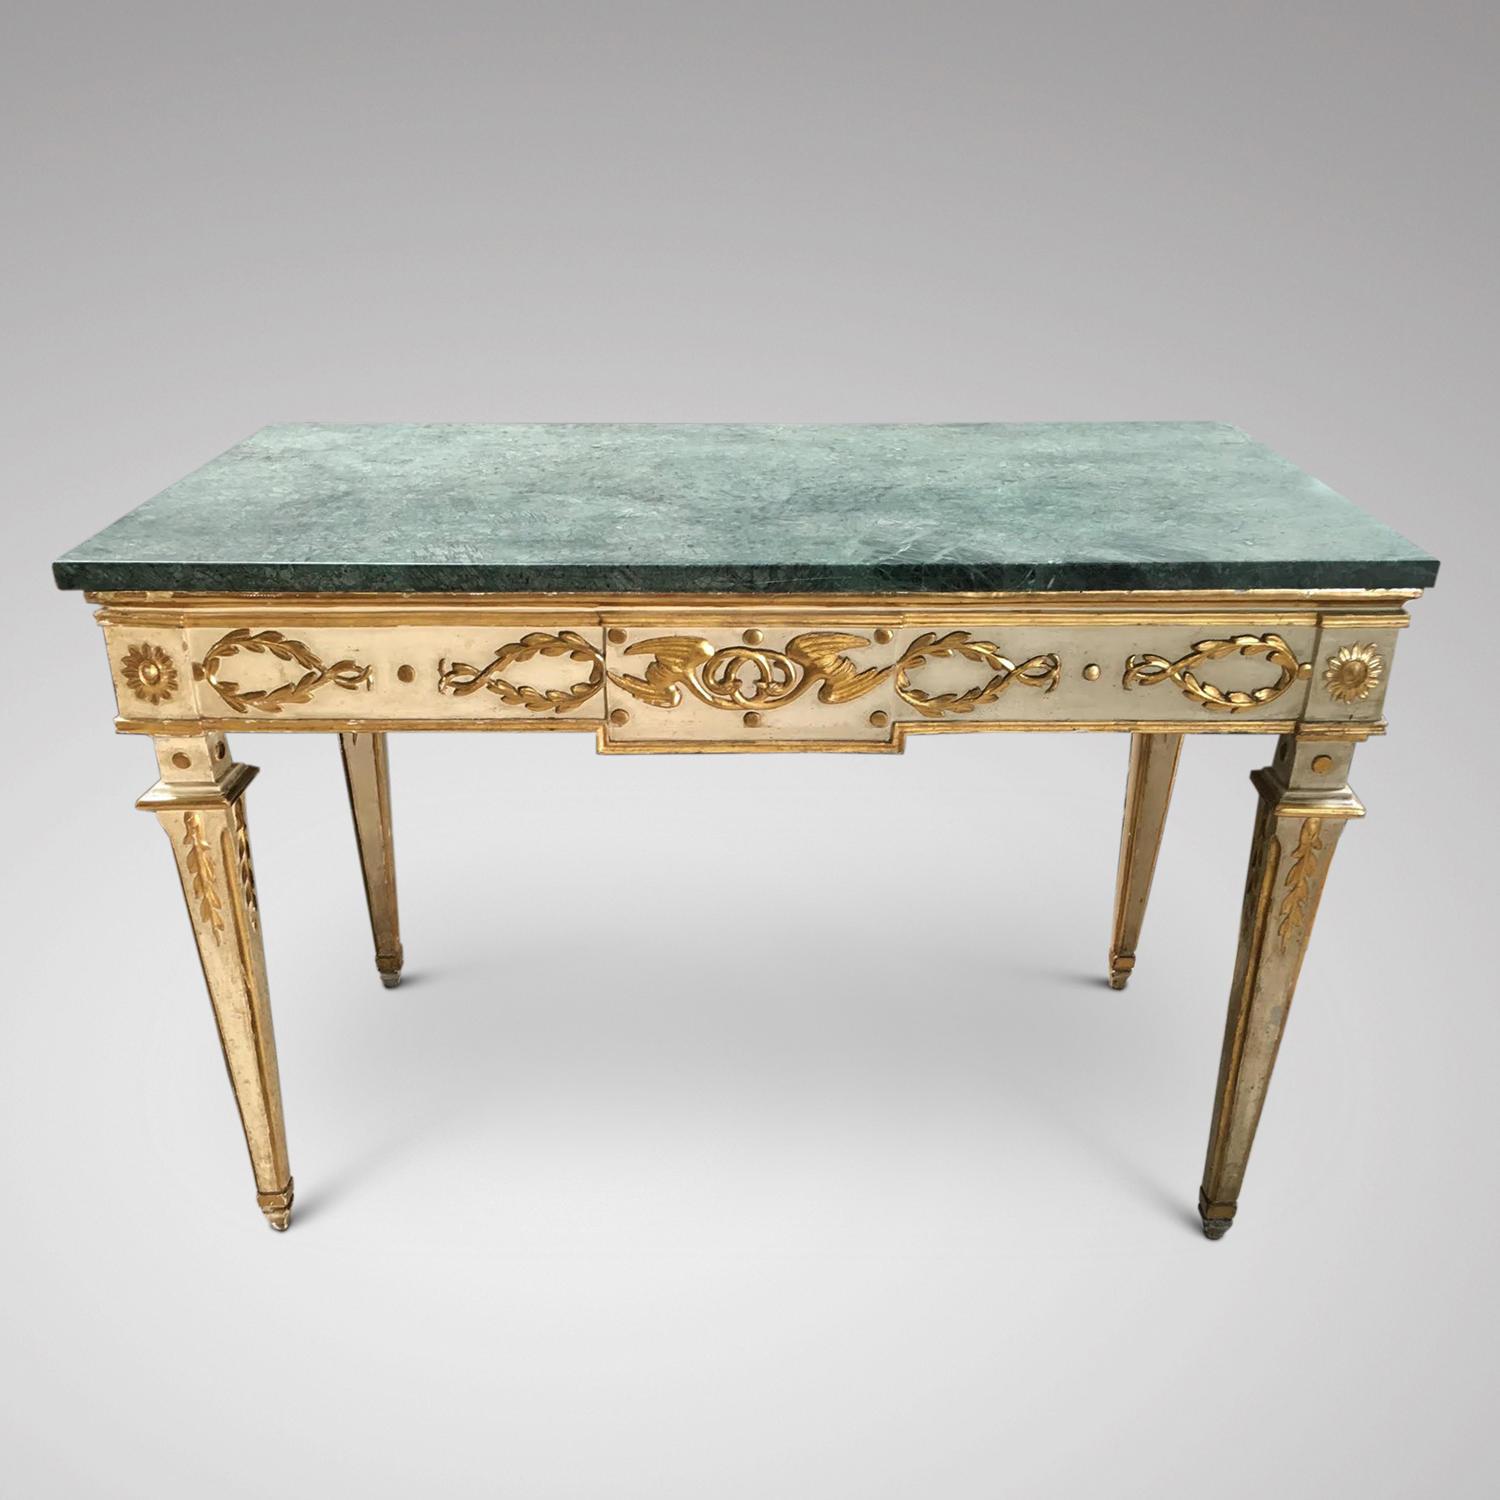 An 18th century Italian decorated neo-classical console table